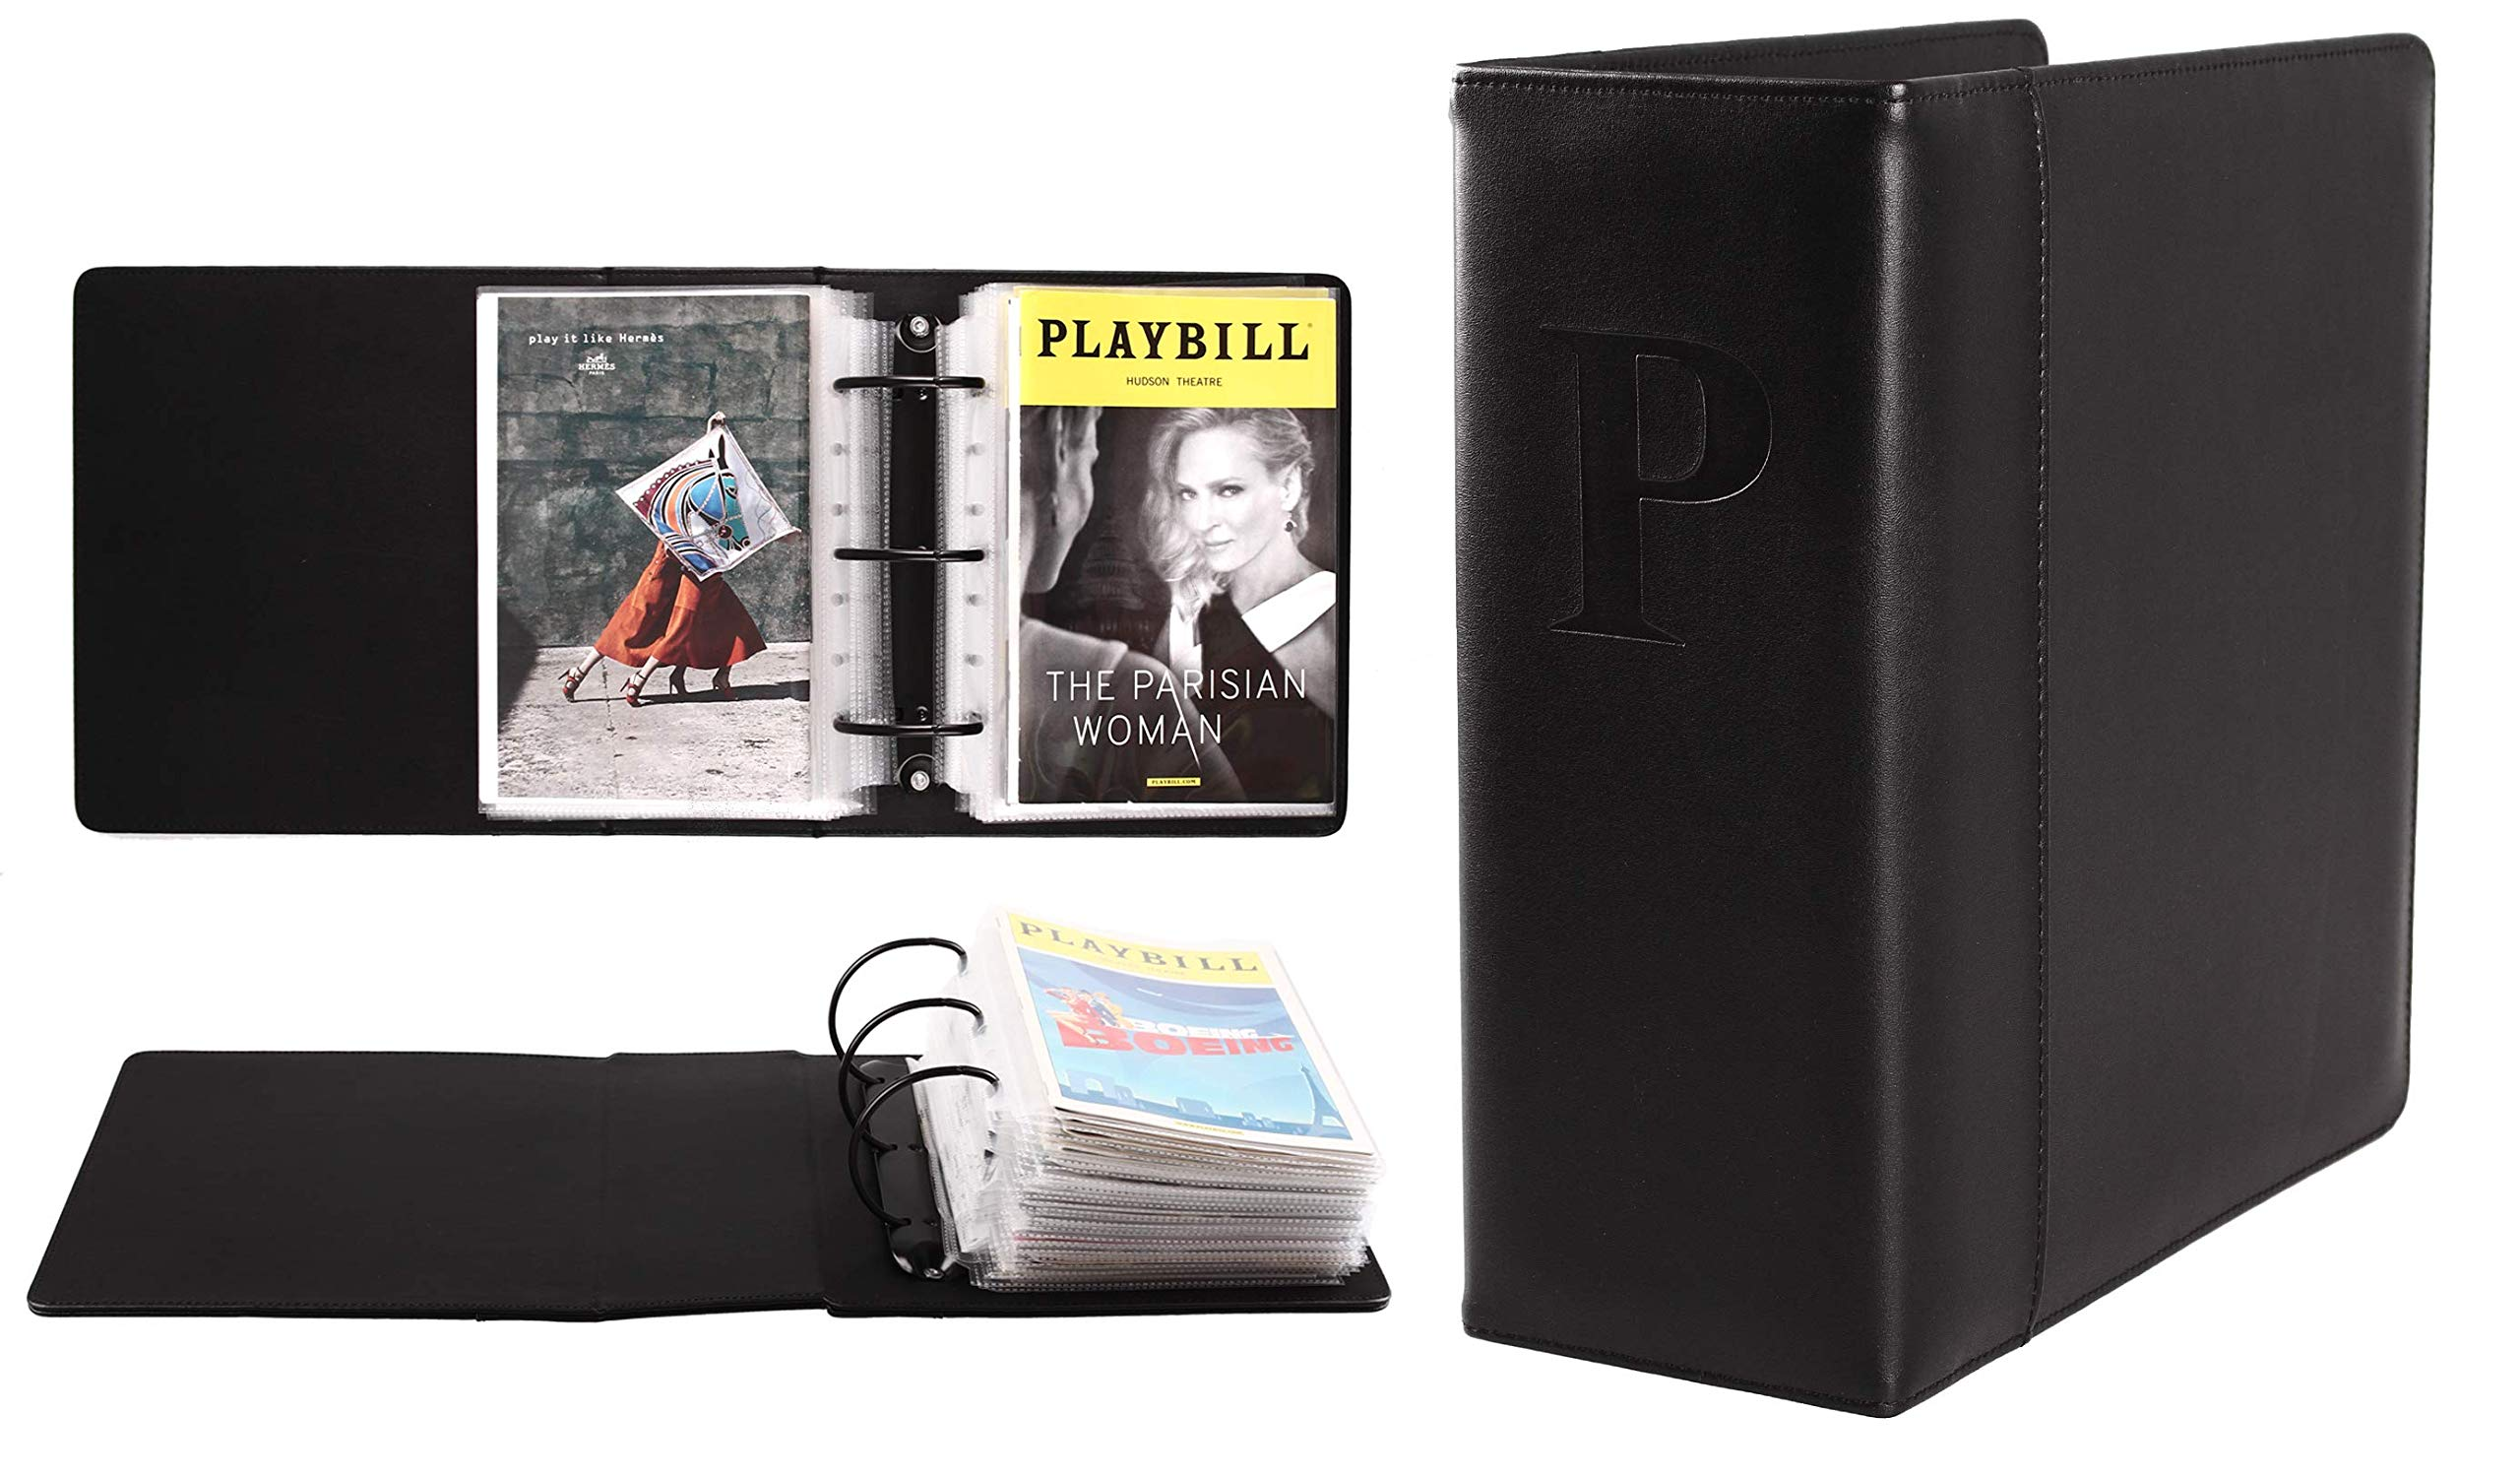 Broadway Play Program and Theater Playbill Binder with 30 Custom Sheet Protectors - PU Leather - Fits Playbills from Mid 1980s to Modern (Black EmbossedP)